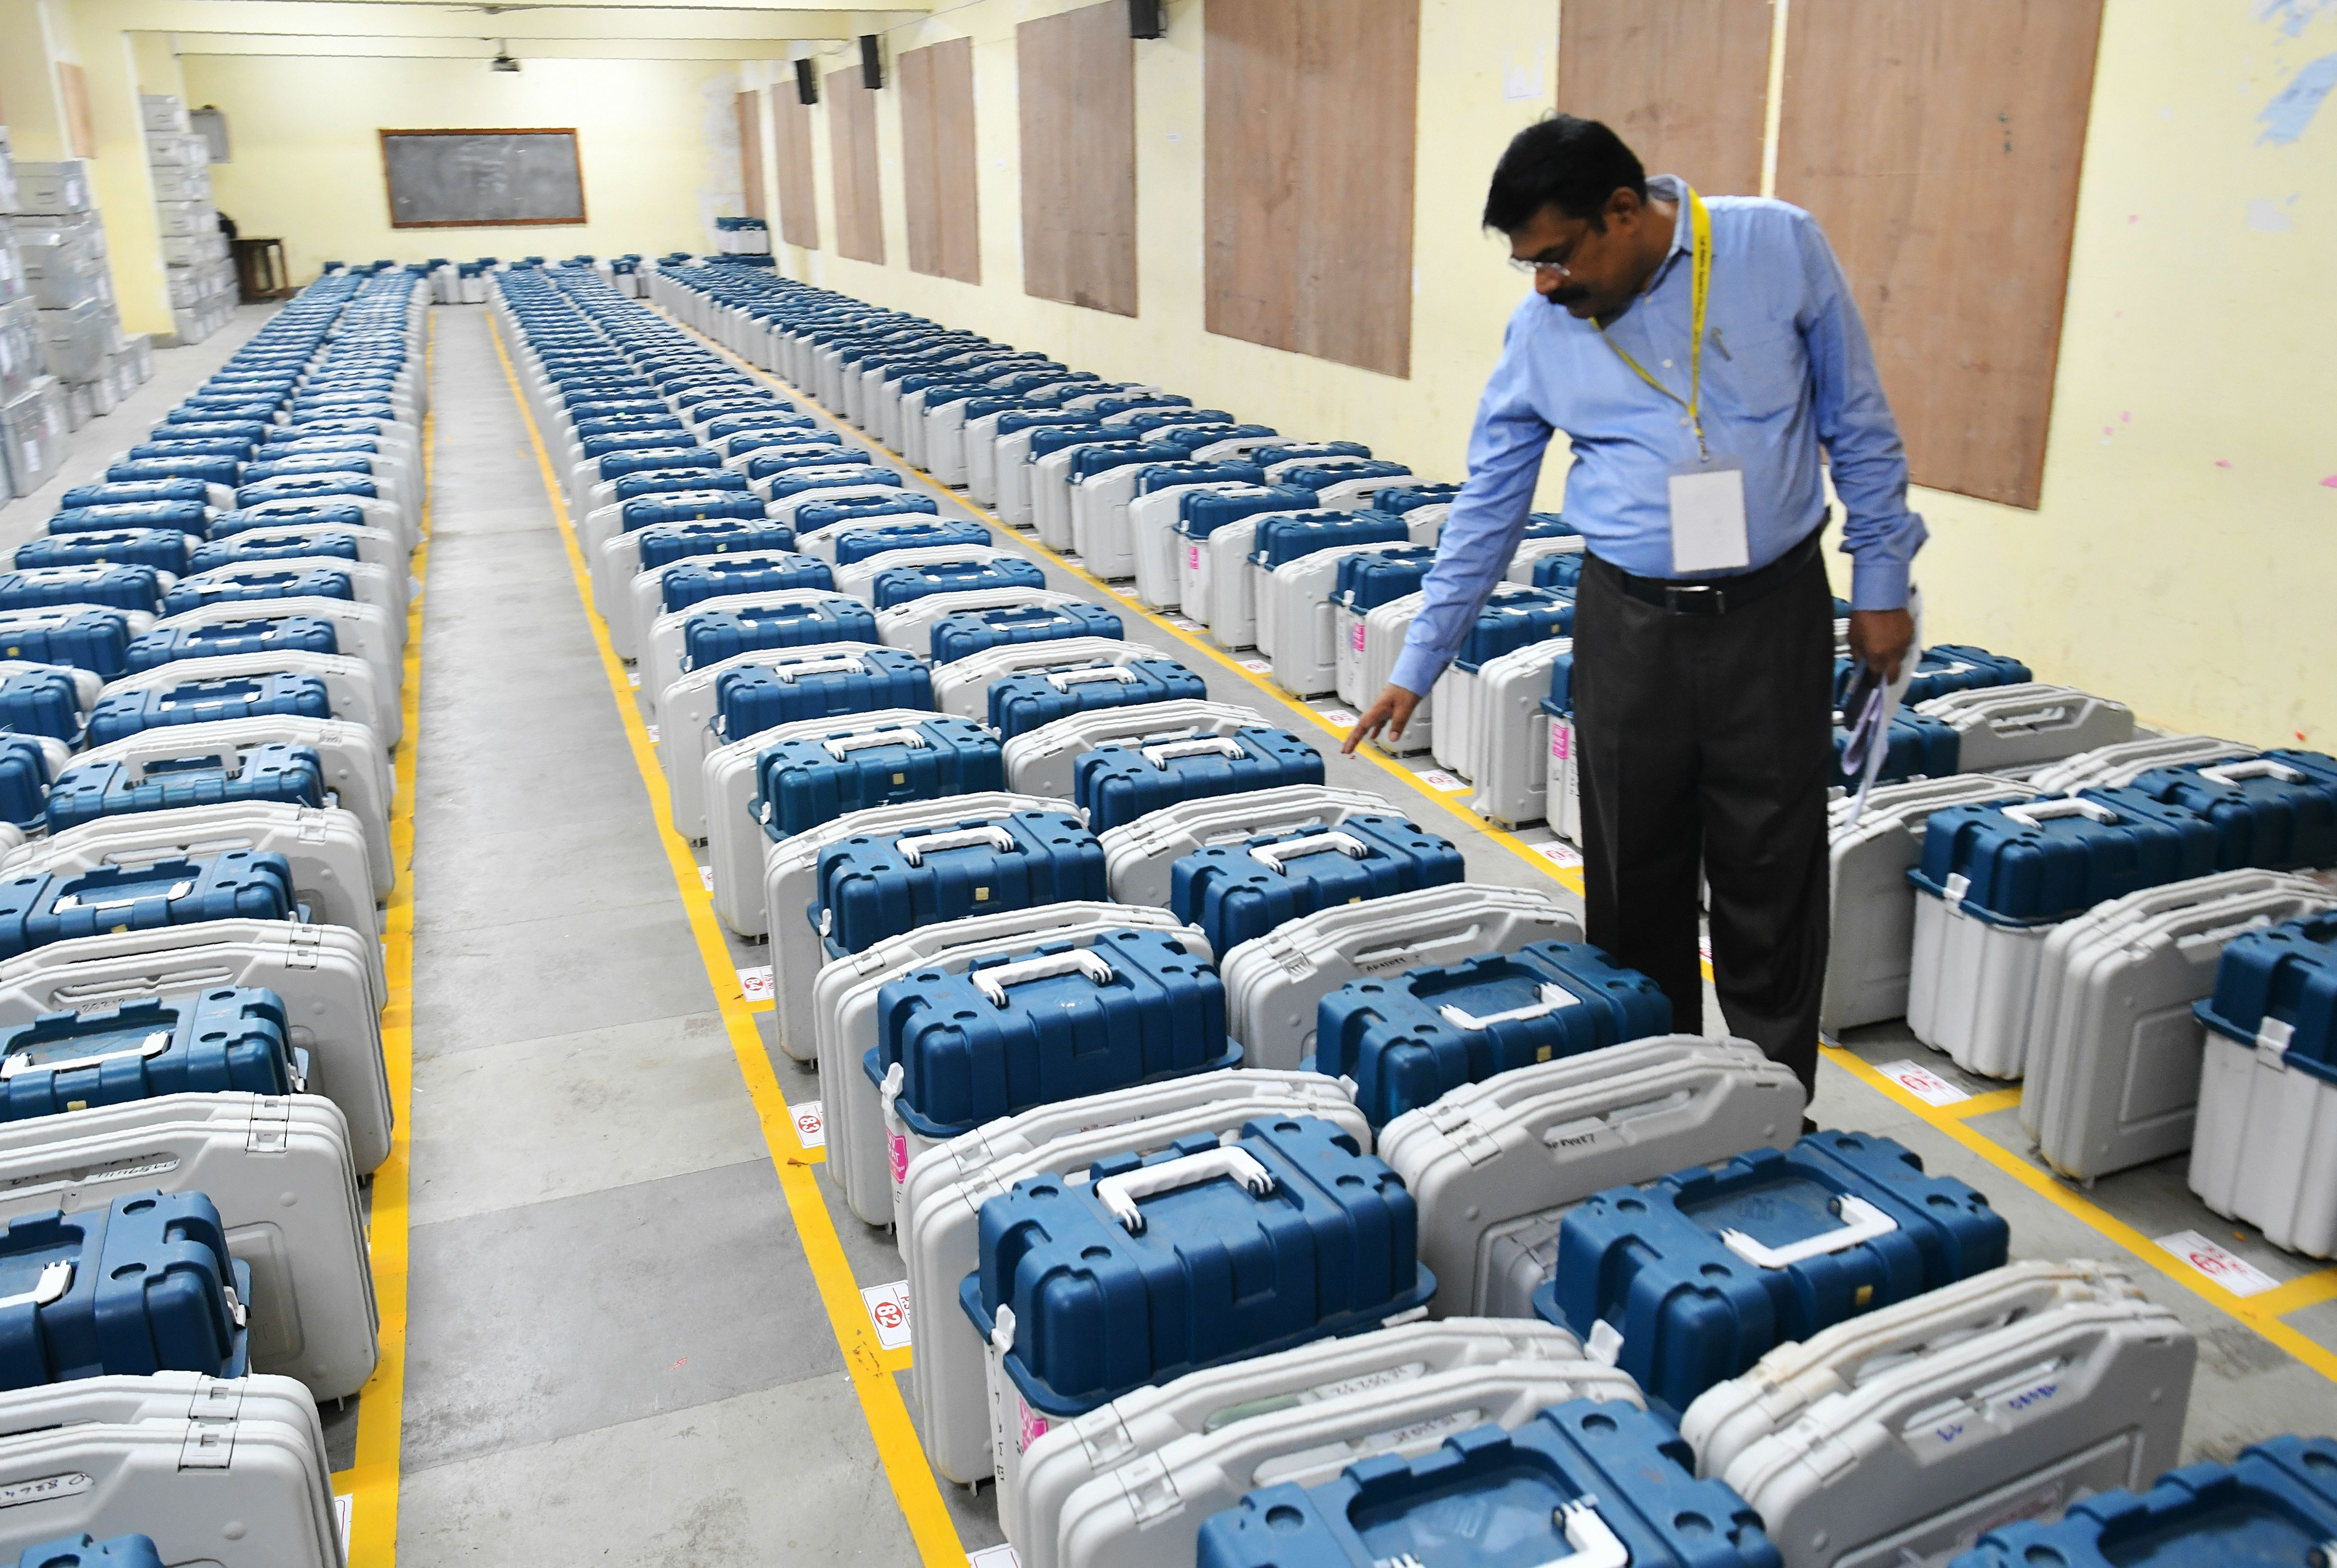 A government official inspects Electronic Voting Machines (EVMs) stored inside the strong room at a polling material and voting machine distribution centre in Bangalore on April 17, 2019.